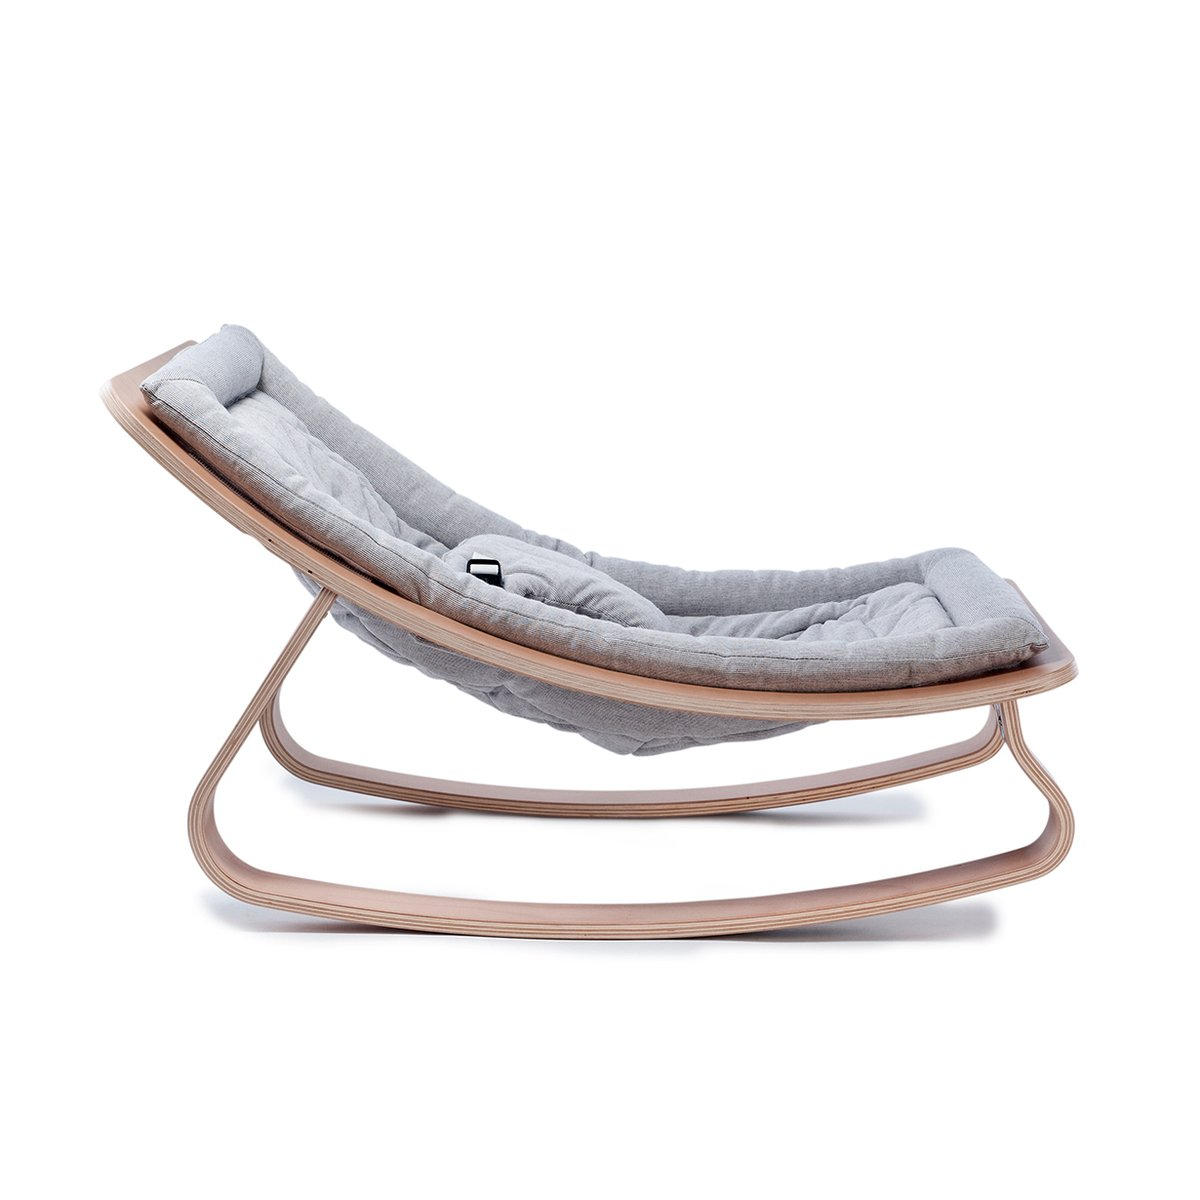 Levo Baby Rocker Bouncer In Beech With Cushion By Charlie